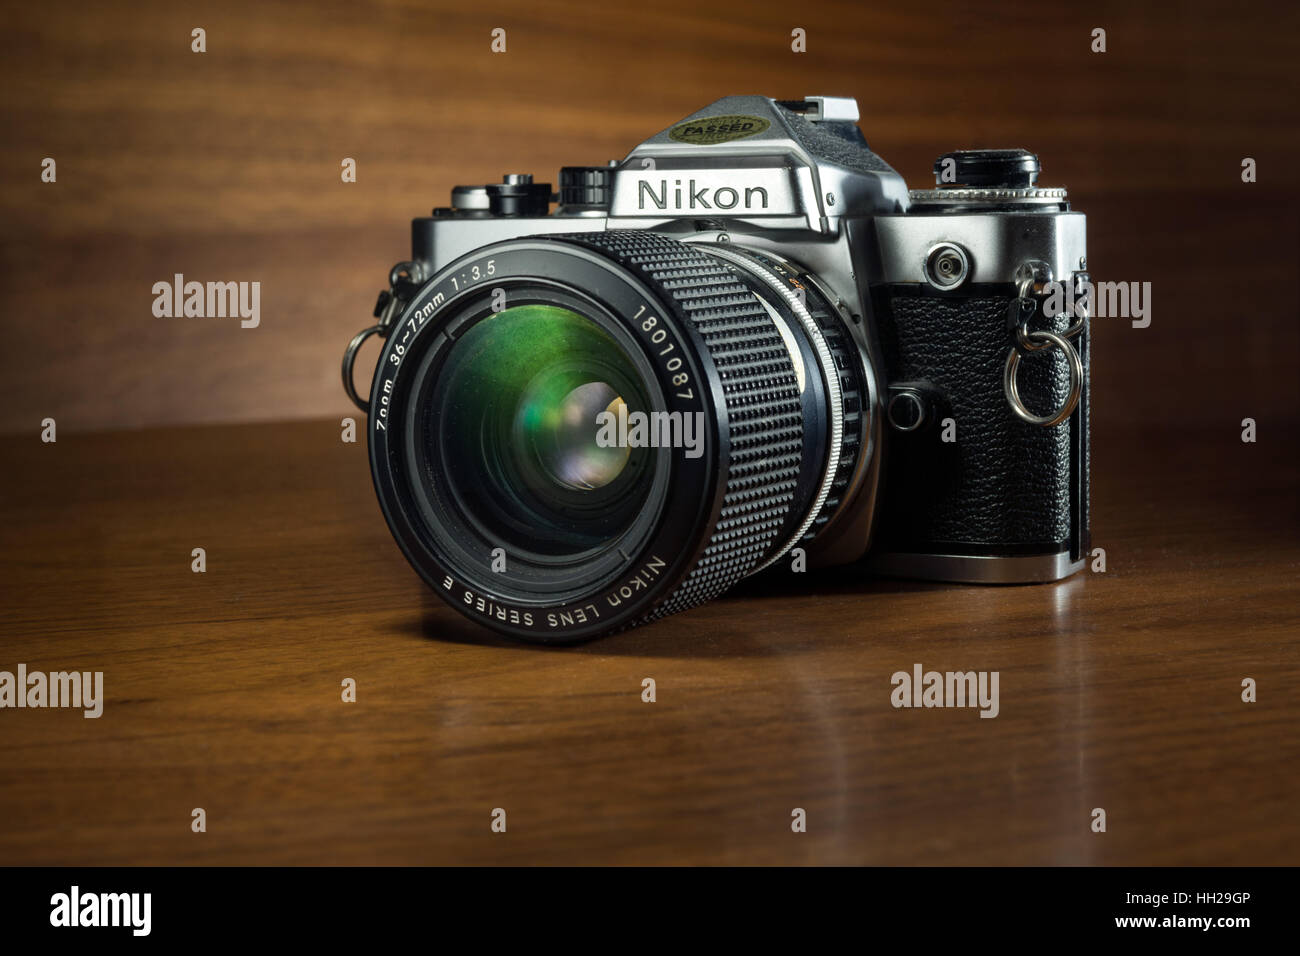 A classic, collectible Nikon FE 35mm SLR film camera from the early 1980's - Stock Image